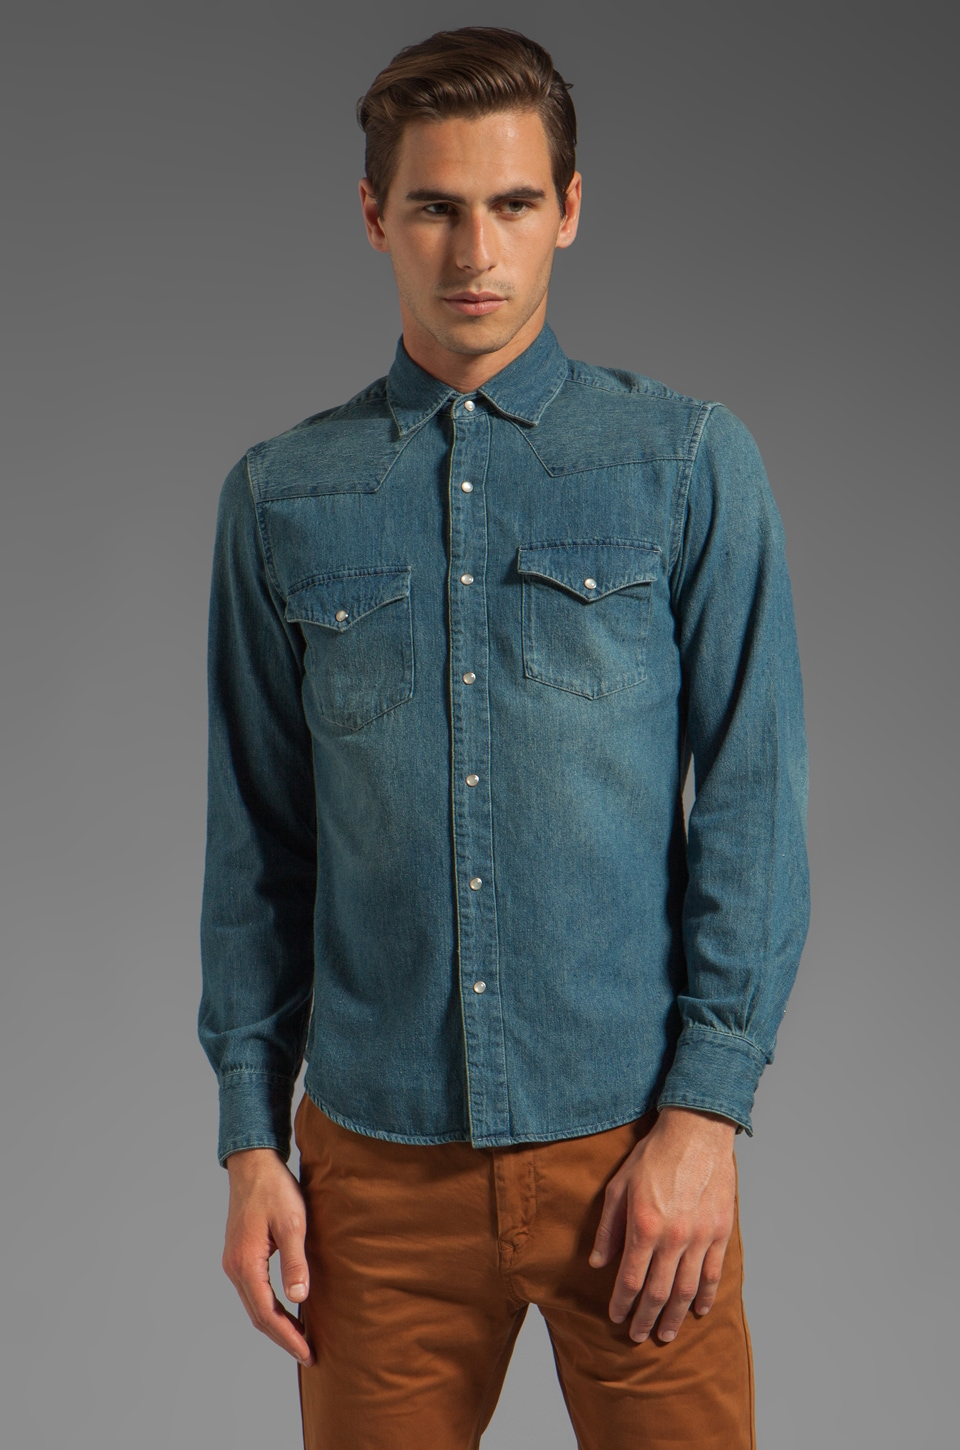 Shades of Grey by Micah Cohen Western Denim Shirt in Vintage Denim